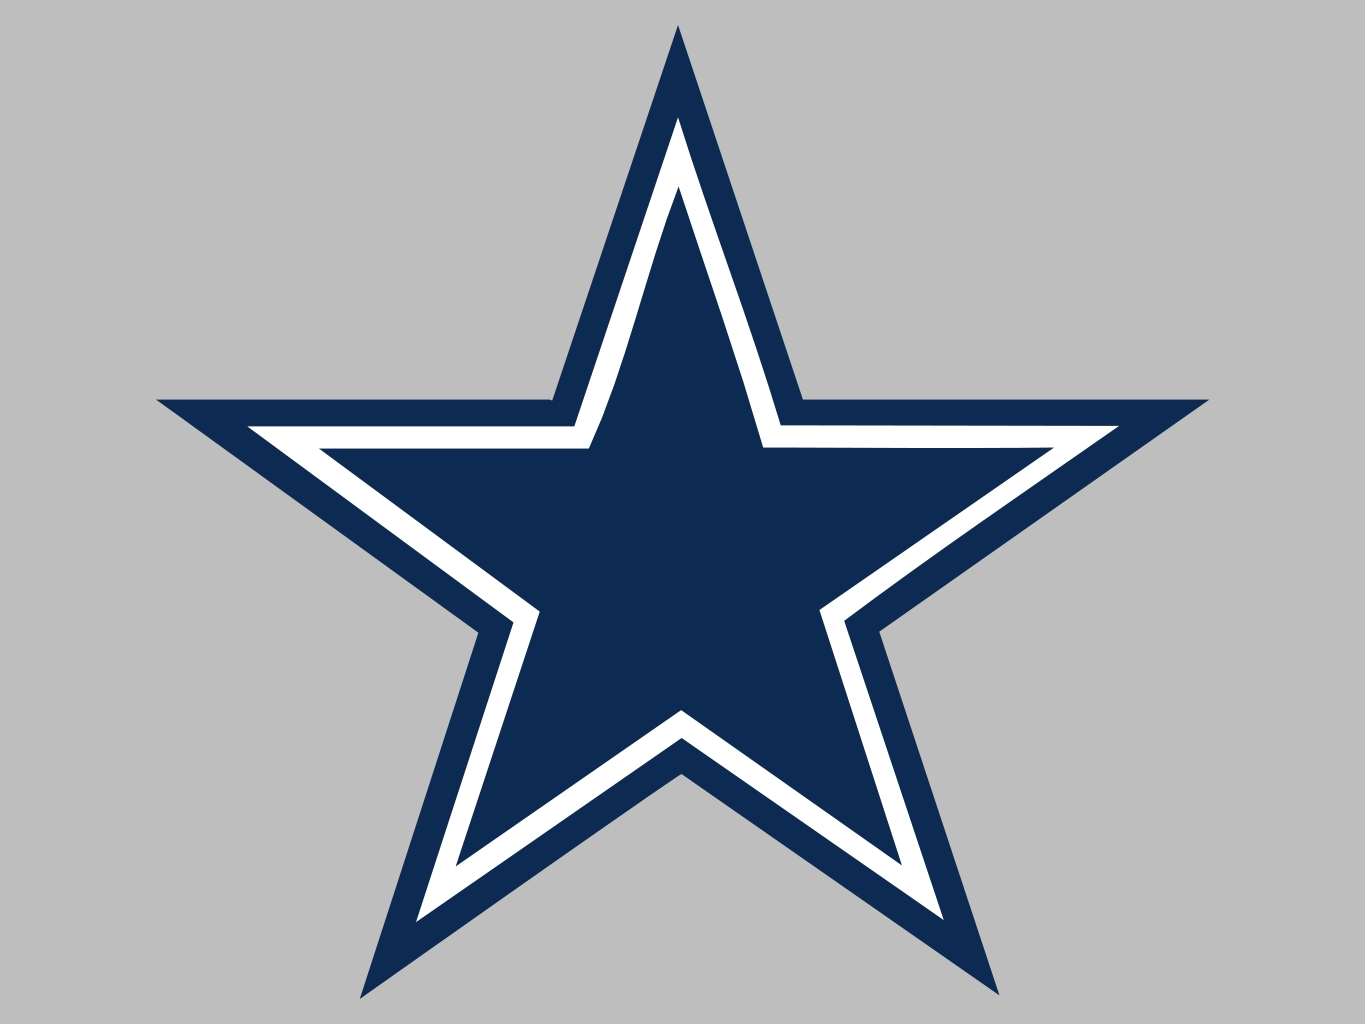 Dallas Cowboys Clip Art Free - Cliparts.co